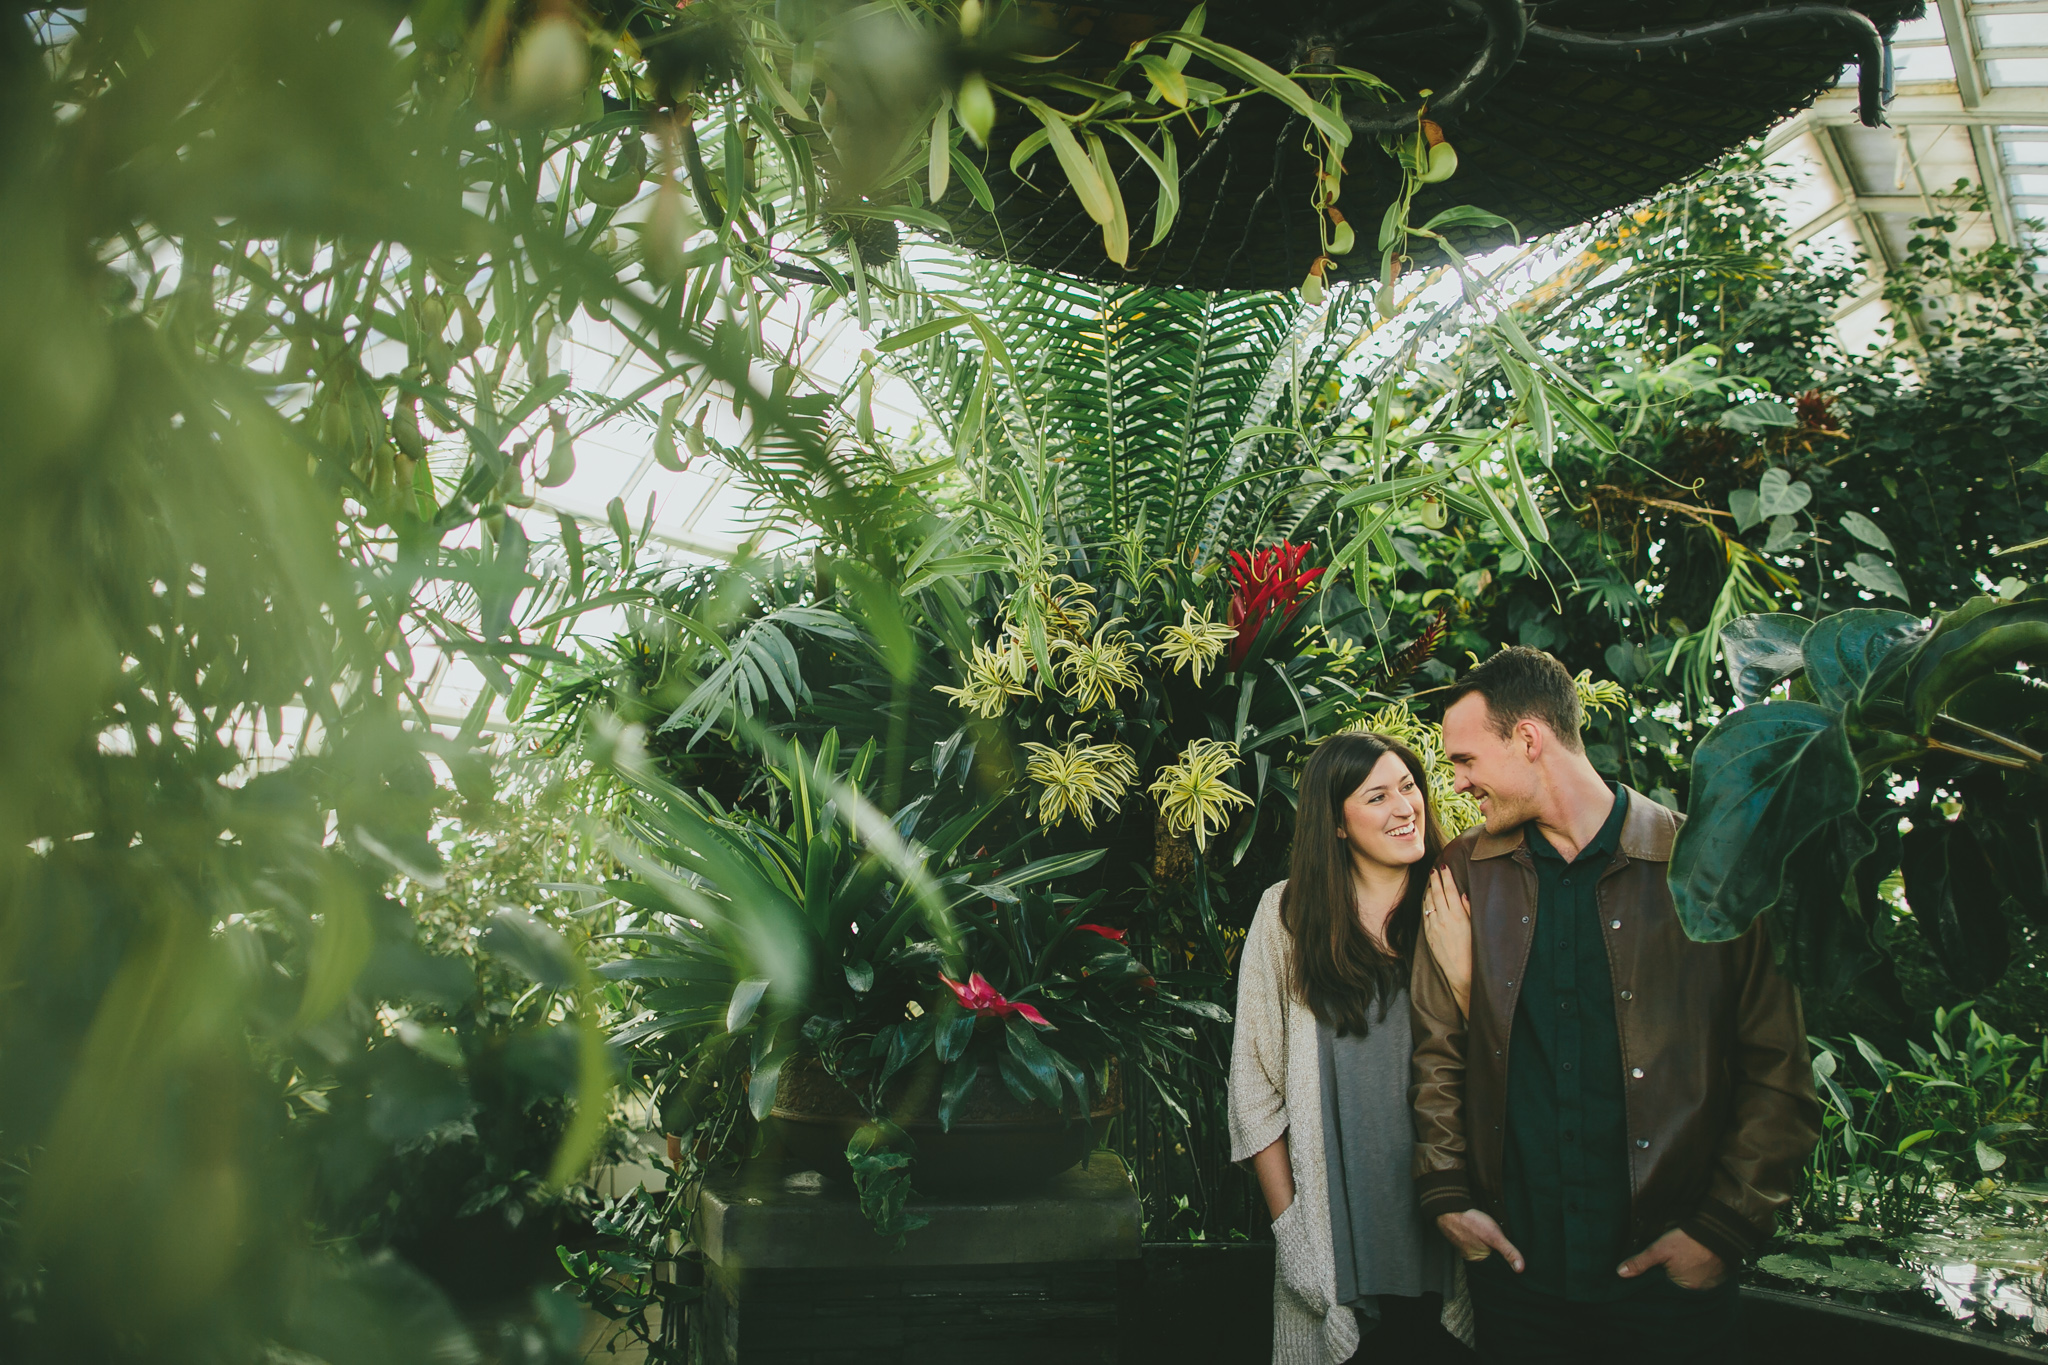 Sunee+Adam-Proposal-KellyBoitanoPhotography_WEB20151229_0030